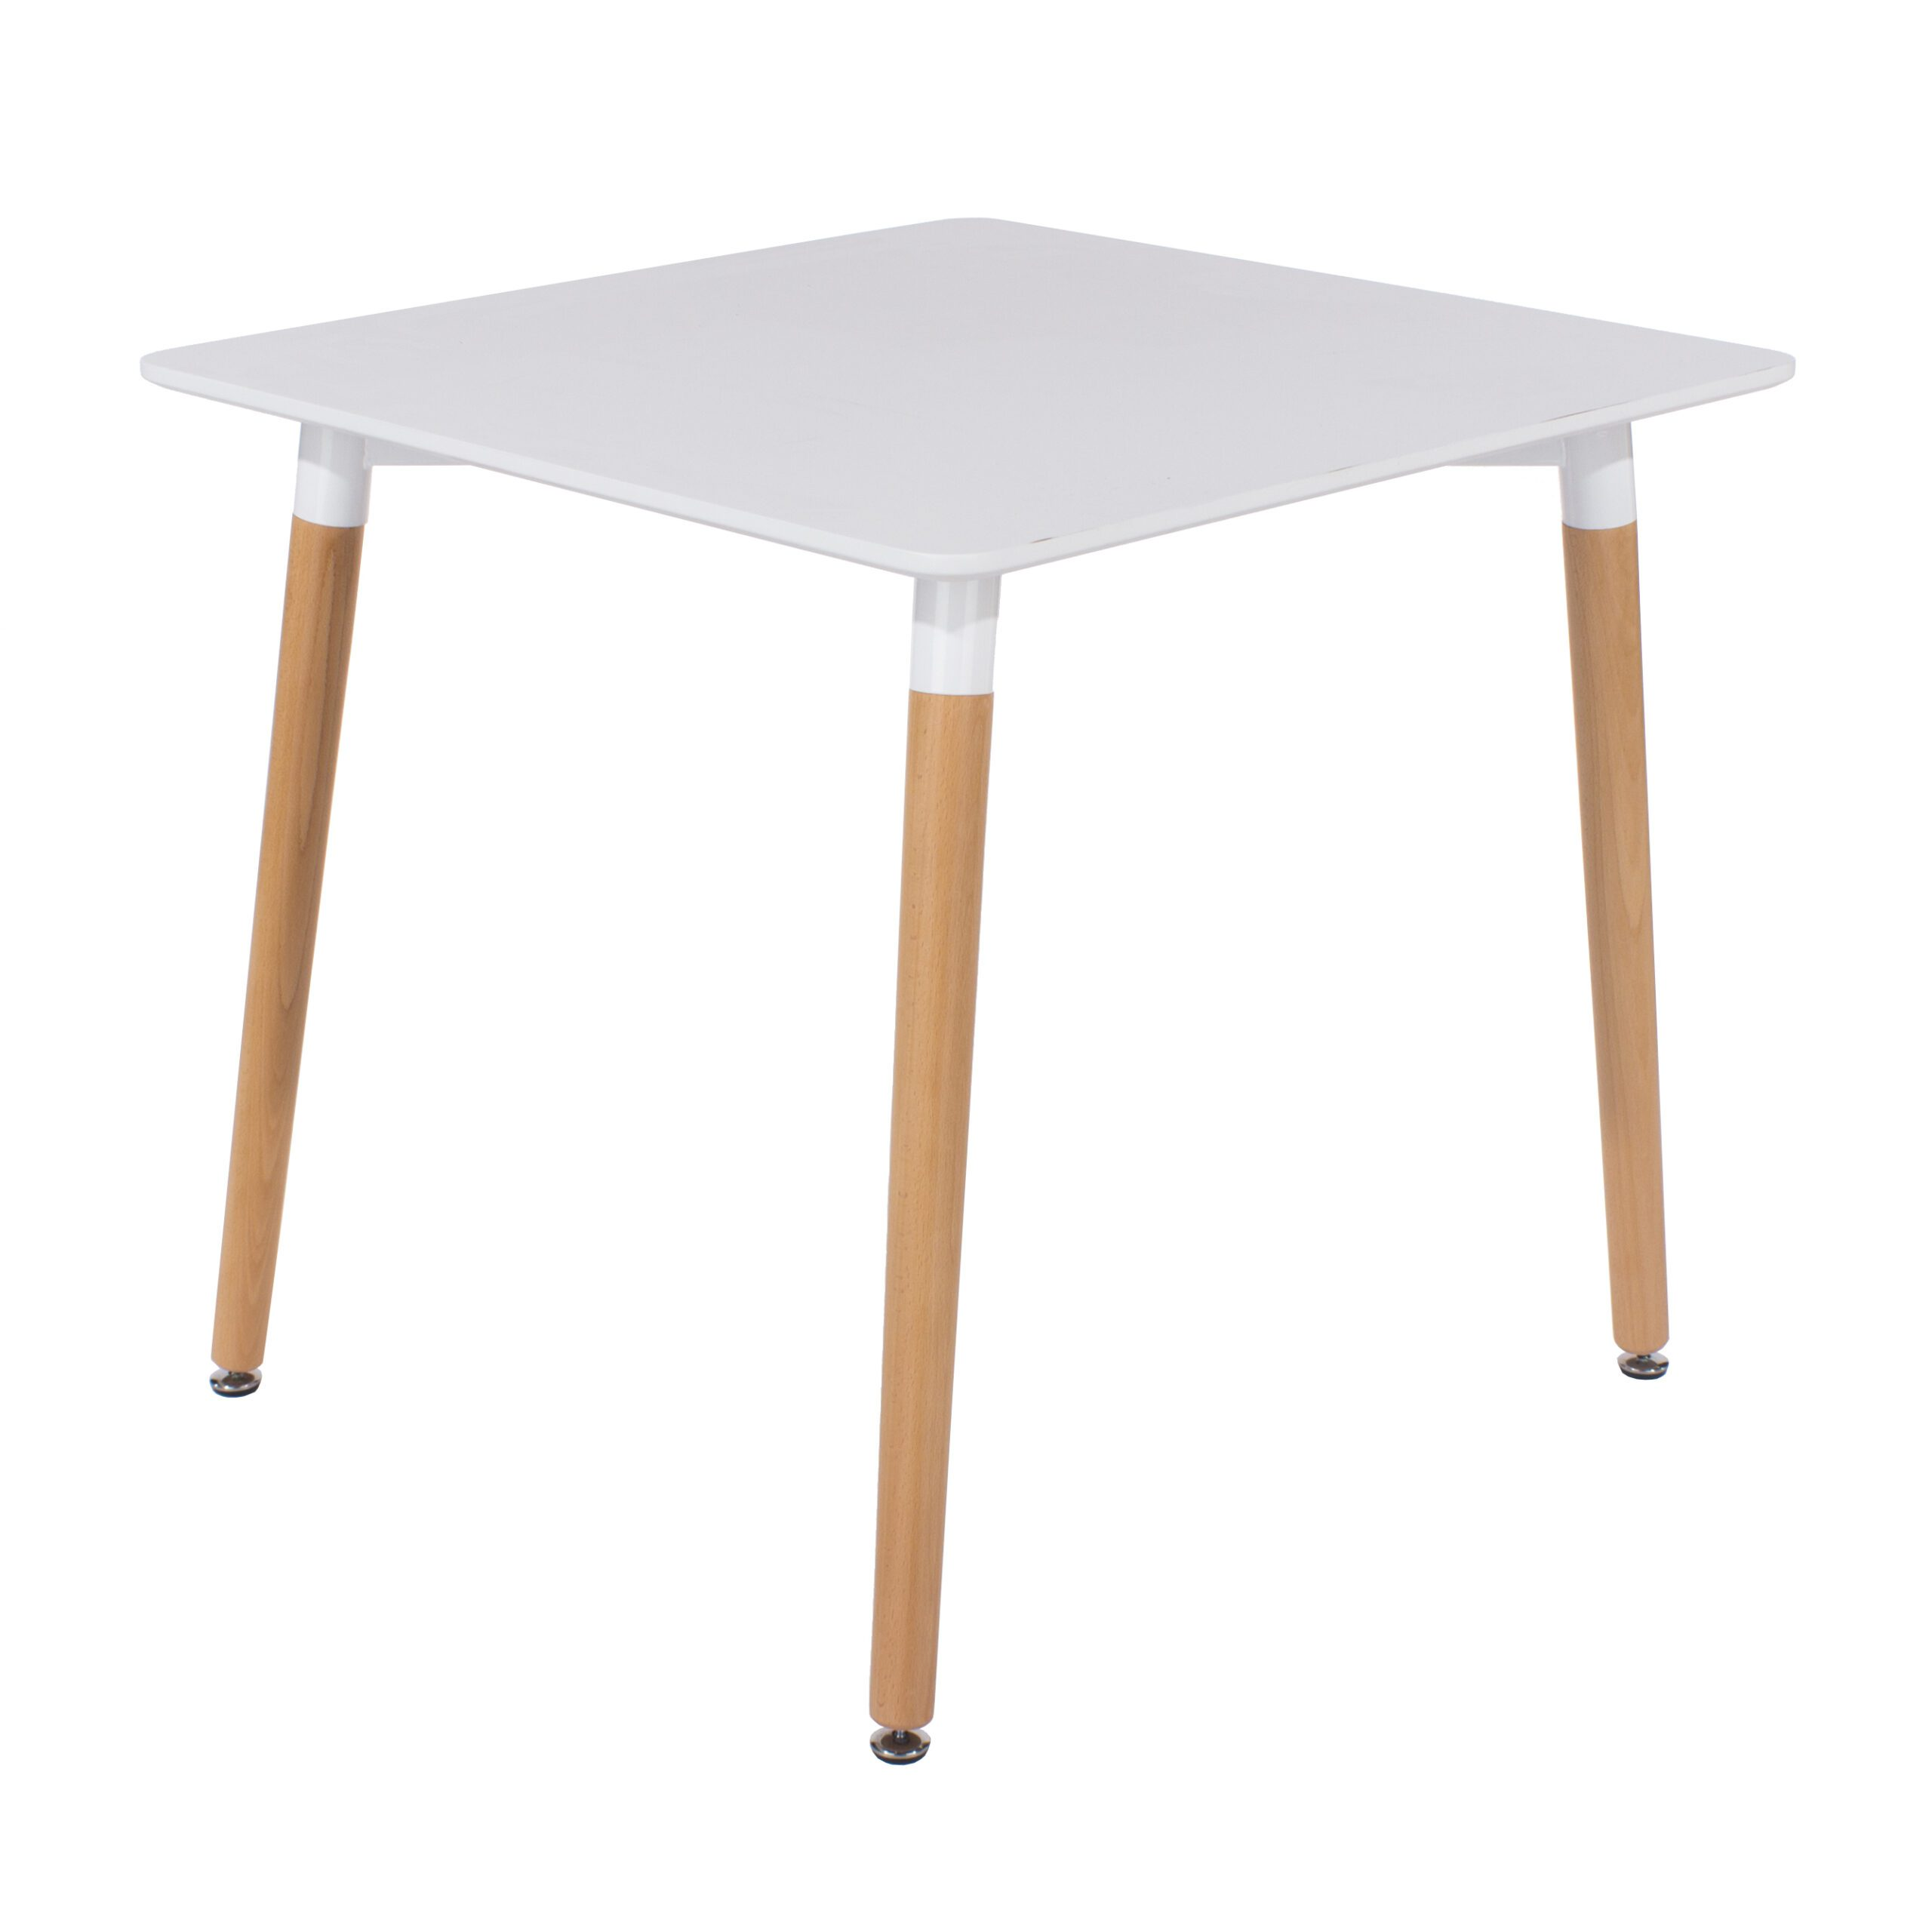 Penny square table with wooden legs